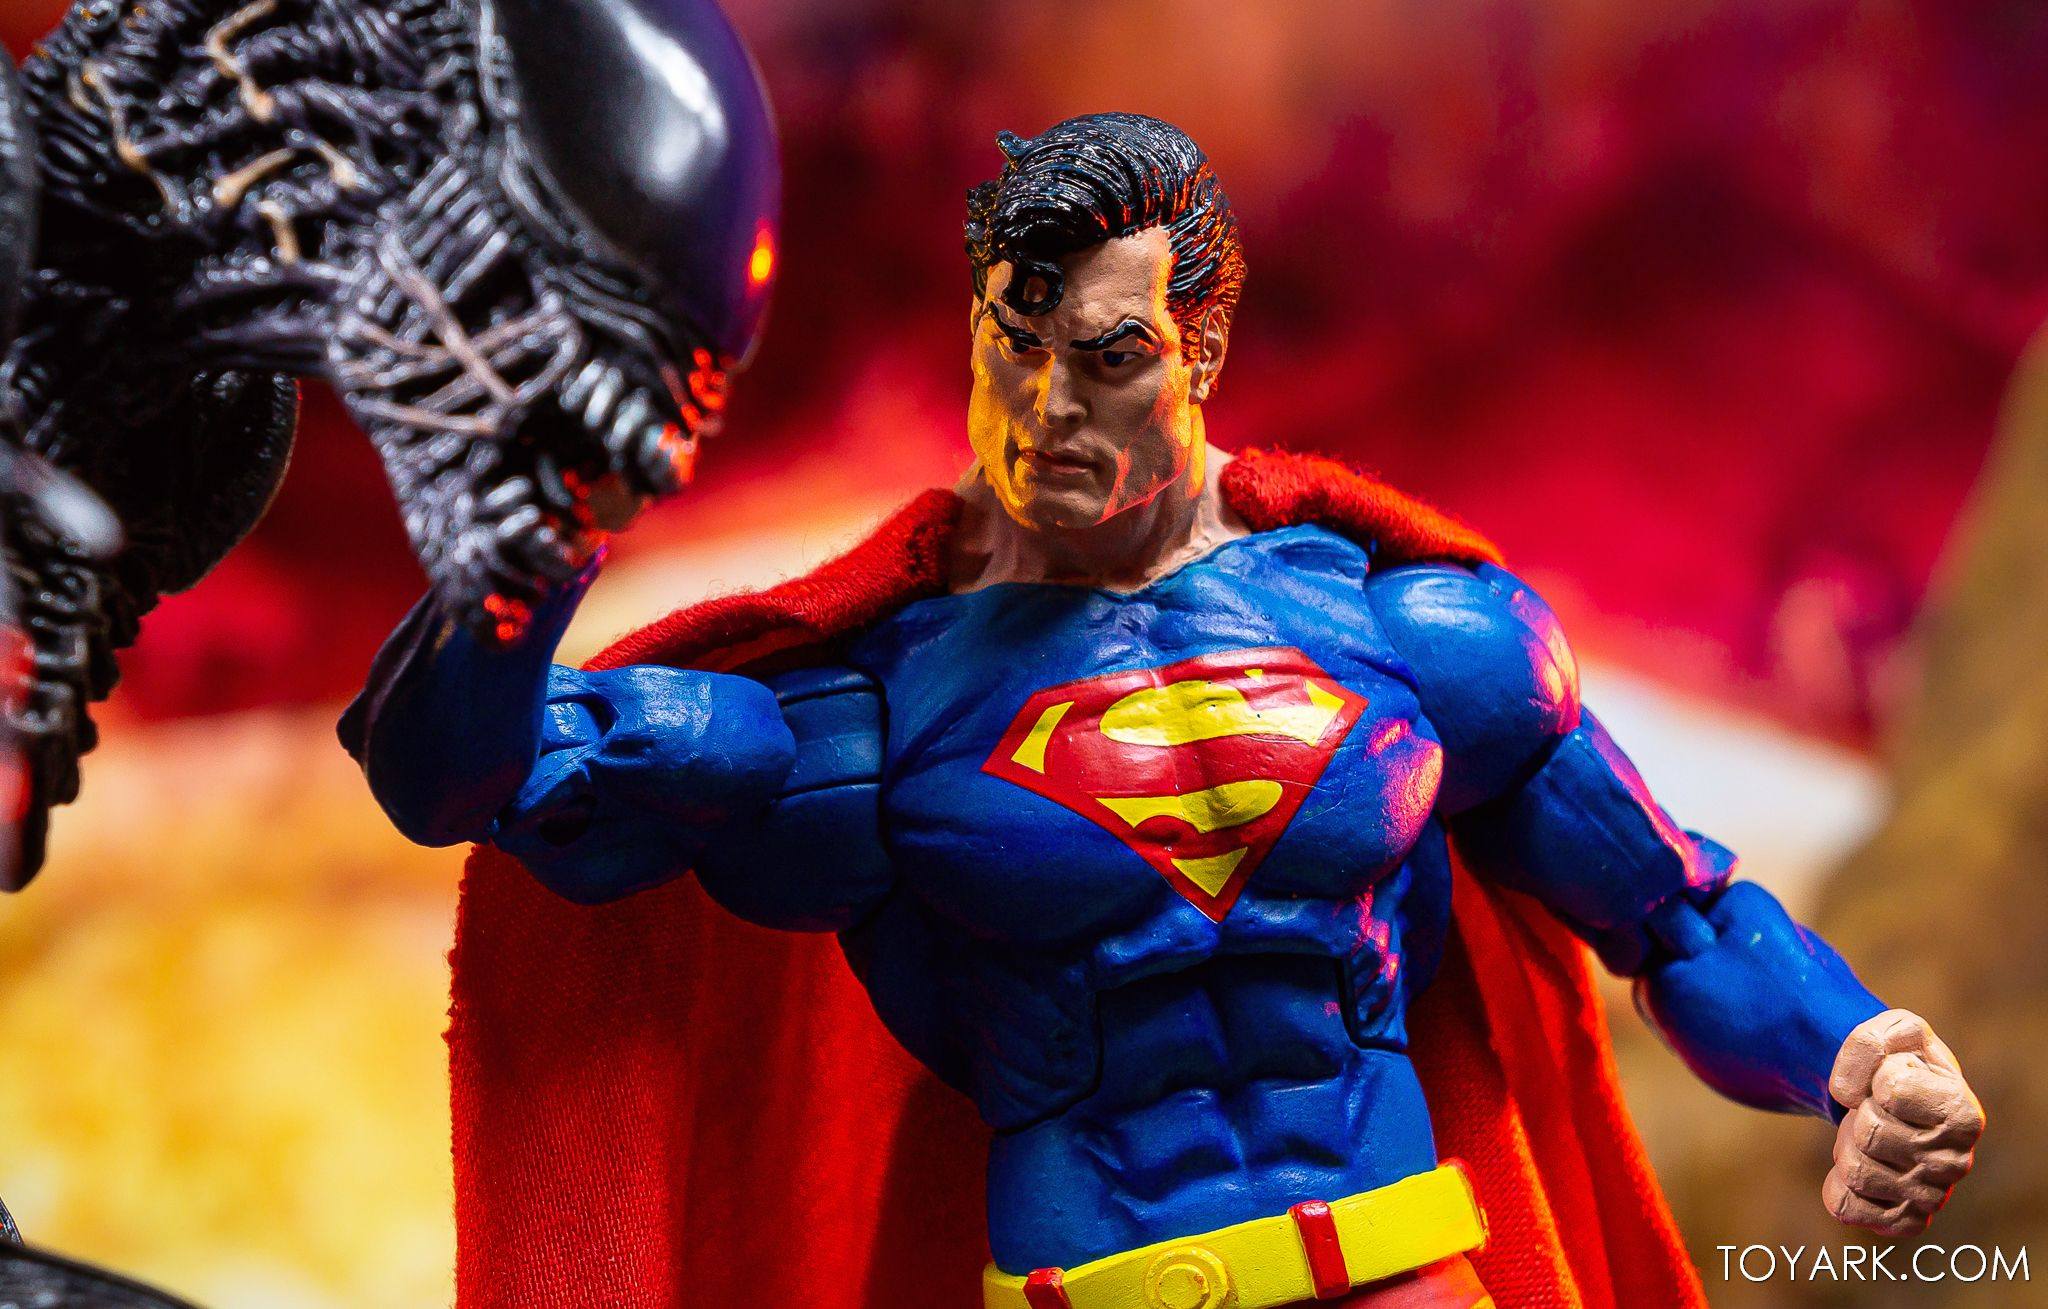 https://news.toyark.com/wp-content/uploads/sites/4/2019/09/Superman-vs-Alien-Set-048.jpg